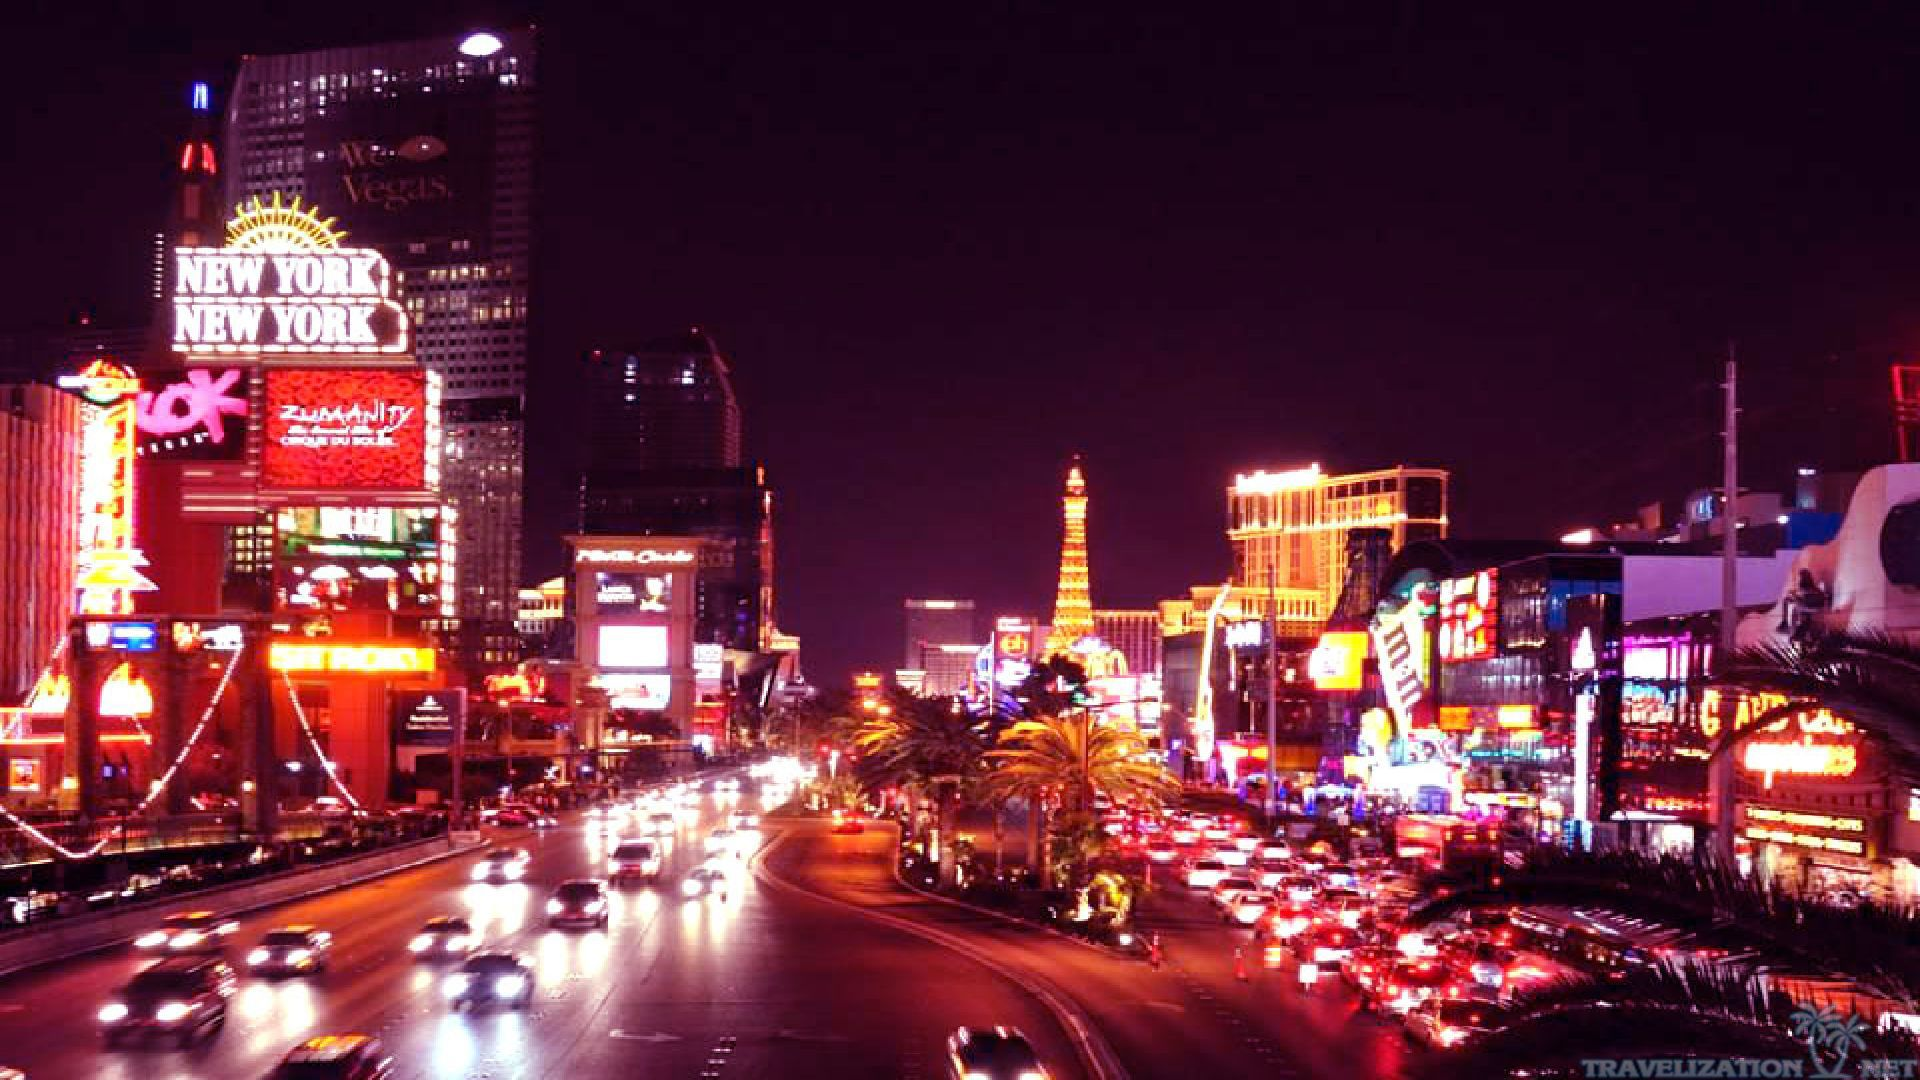 Las Vegas Wallpapers: Download Wallpaper In HD Here